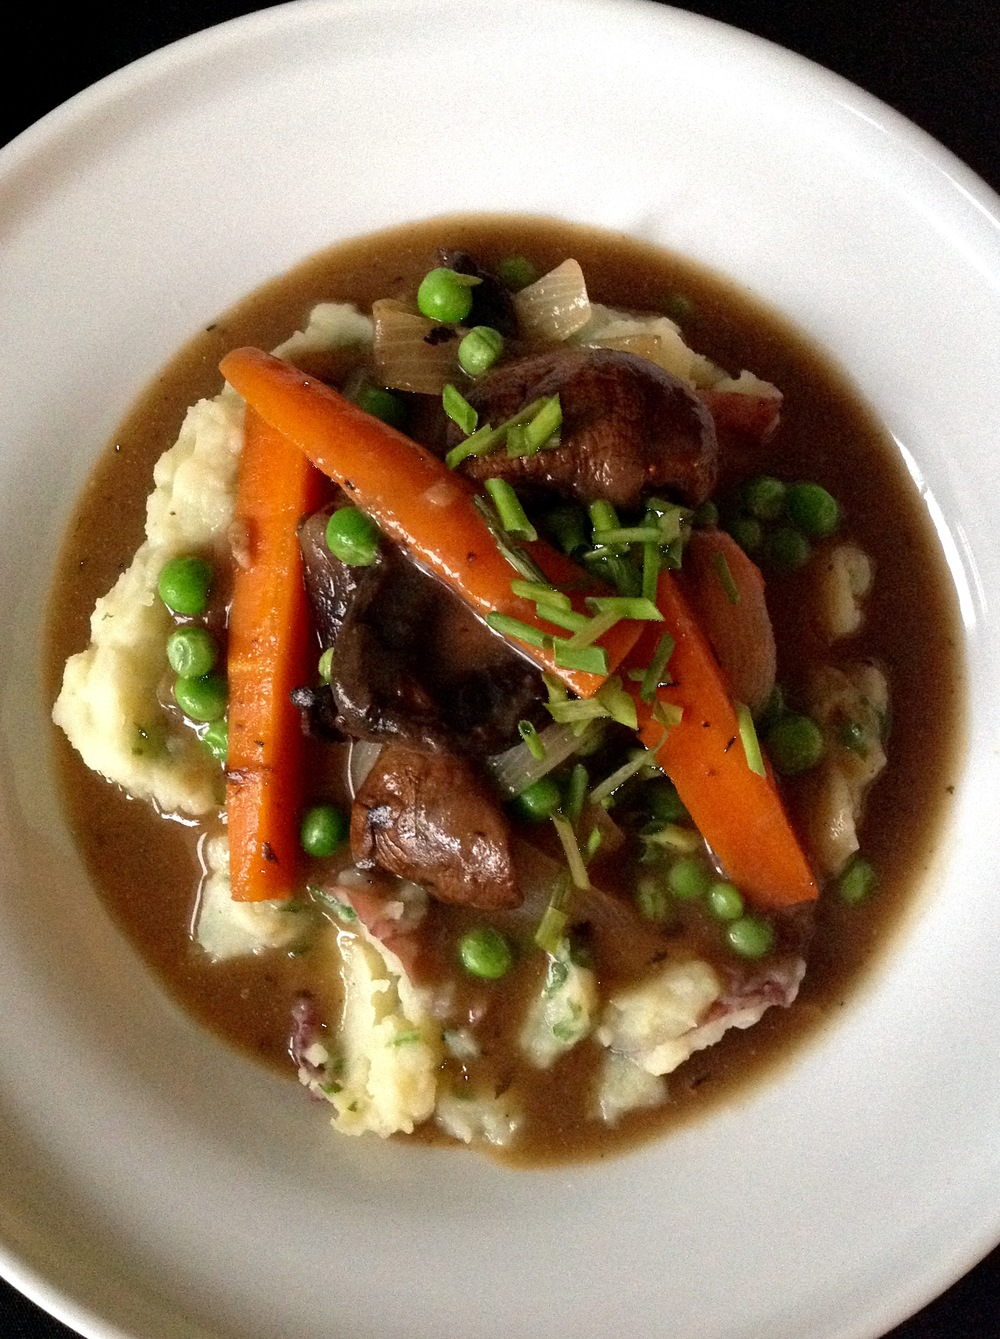 Hearty Belgium Mushroom Stew over Smashed Red Potatoes